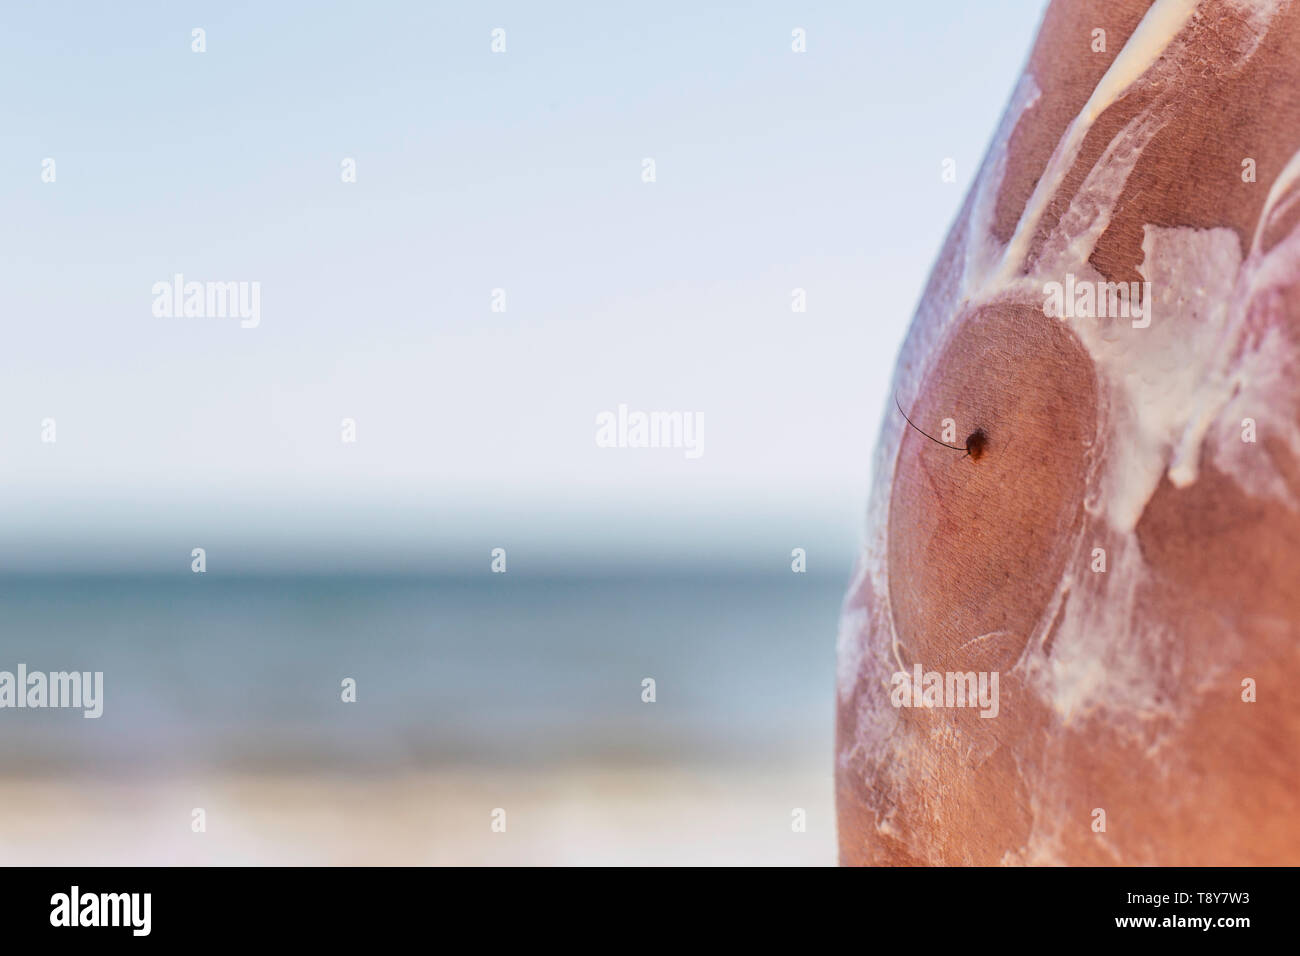 Close Up Of A Caucasian Man Applying Solar Protection To Mole With Hair Dry Skin At The Beach Cancer Concept Skin Care Stock Photo Alamy